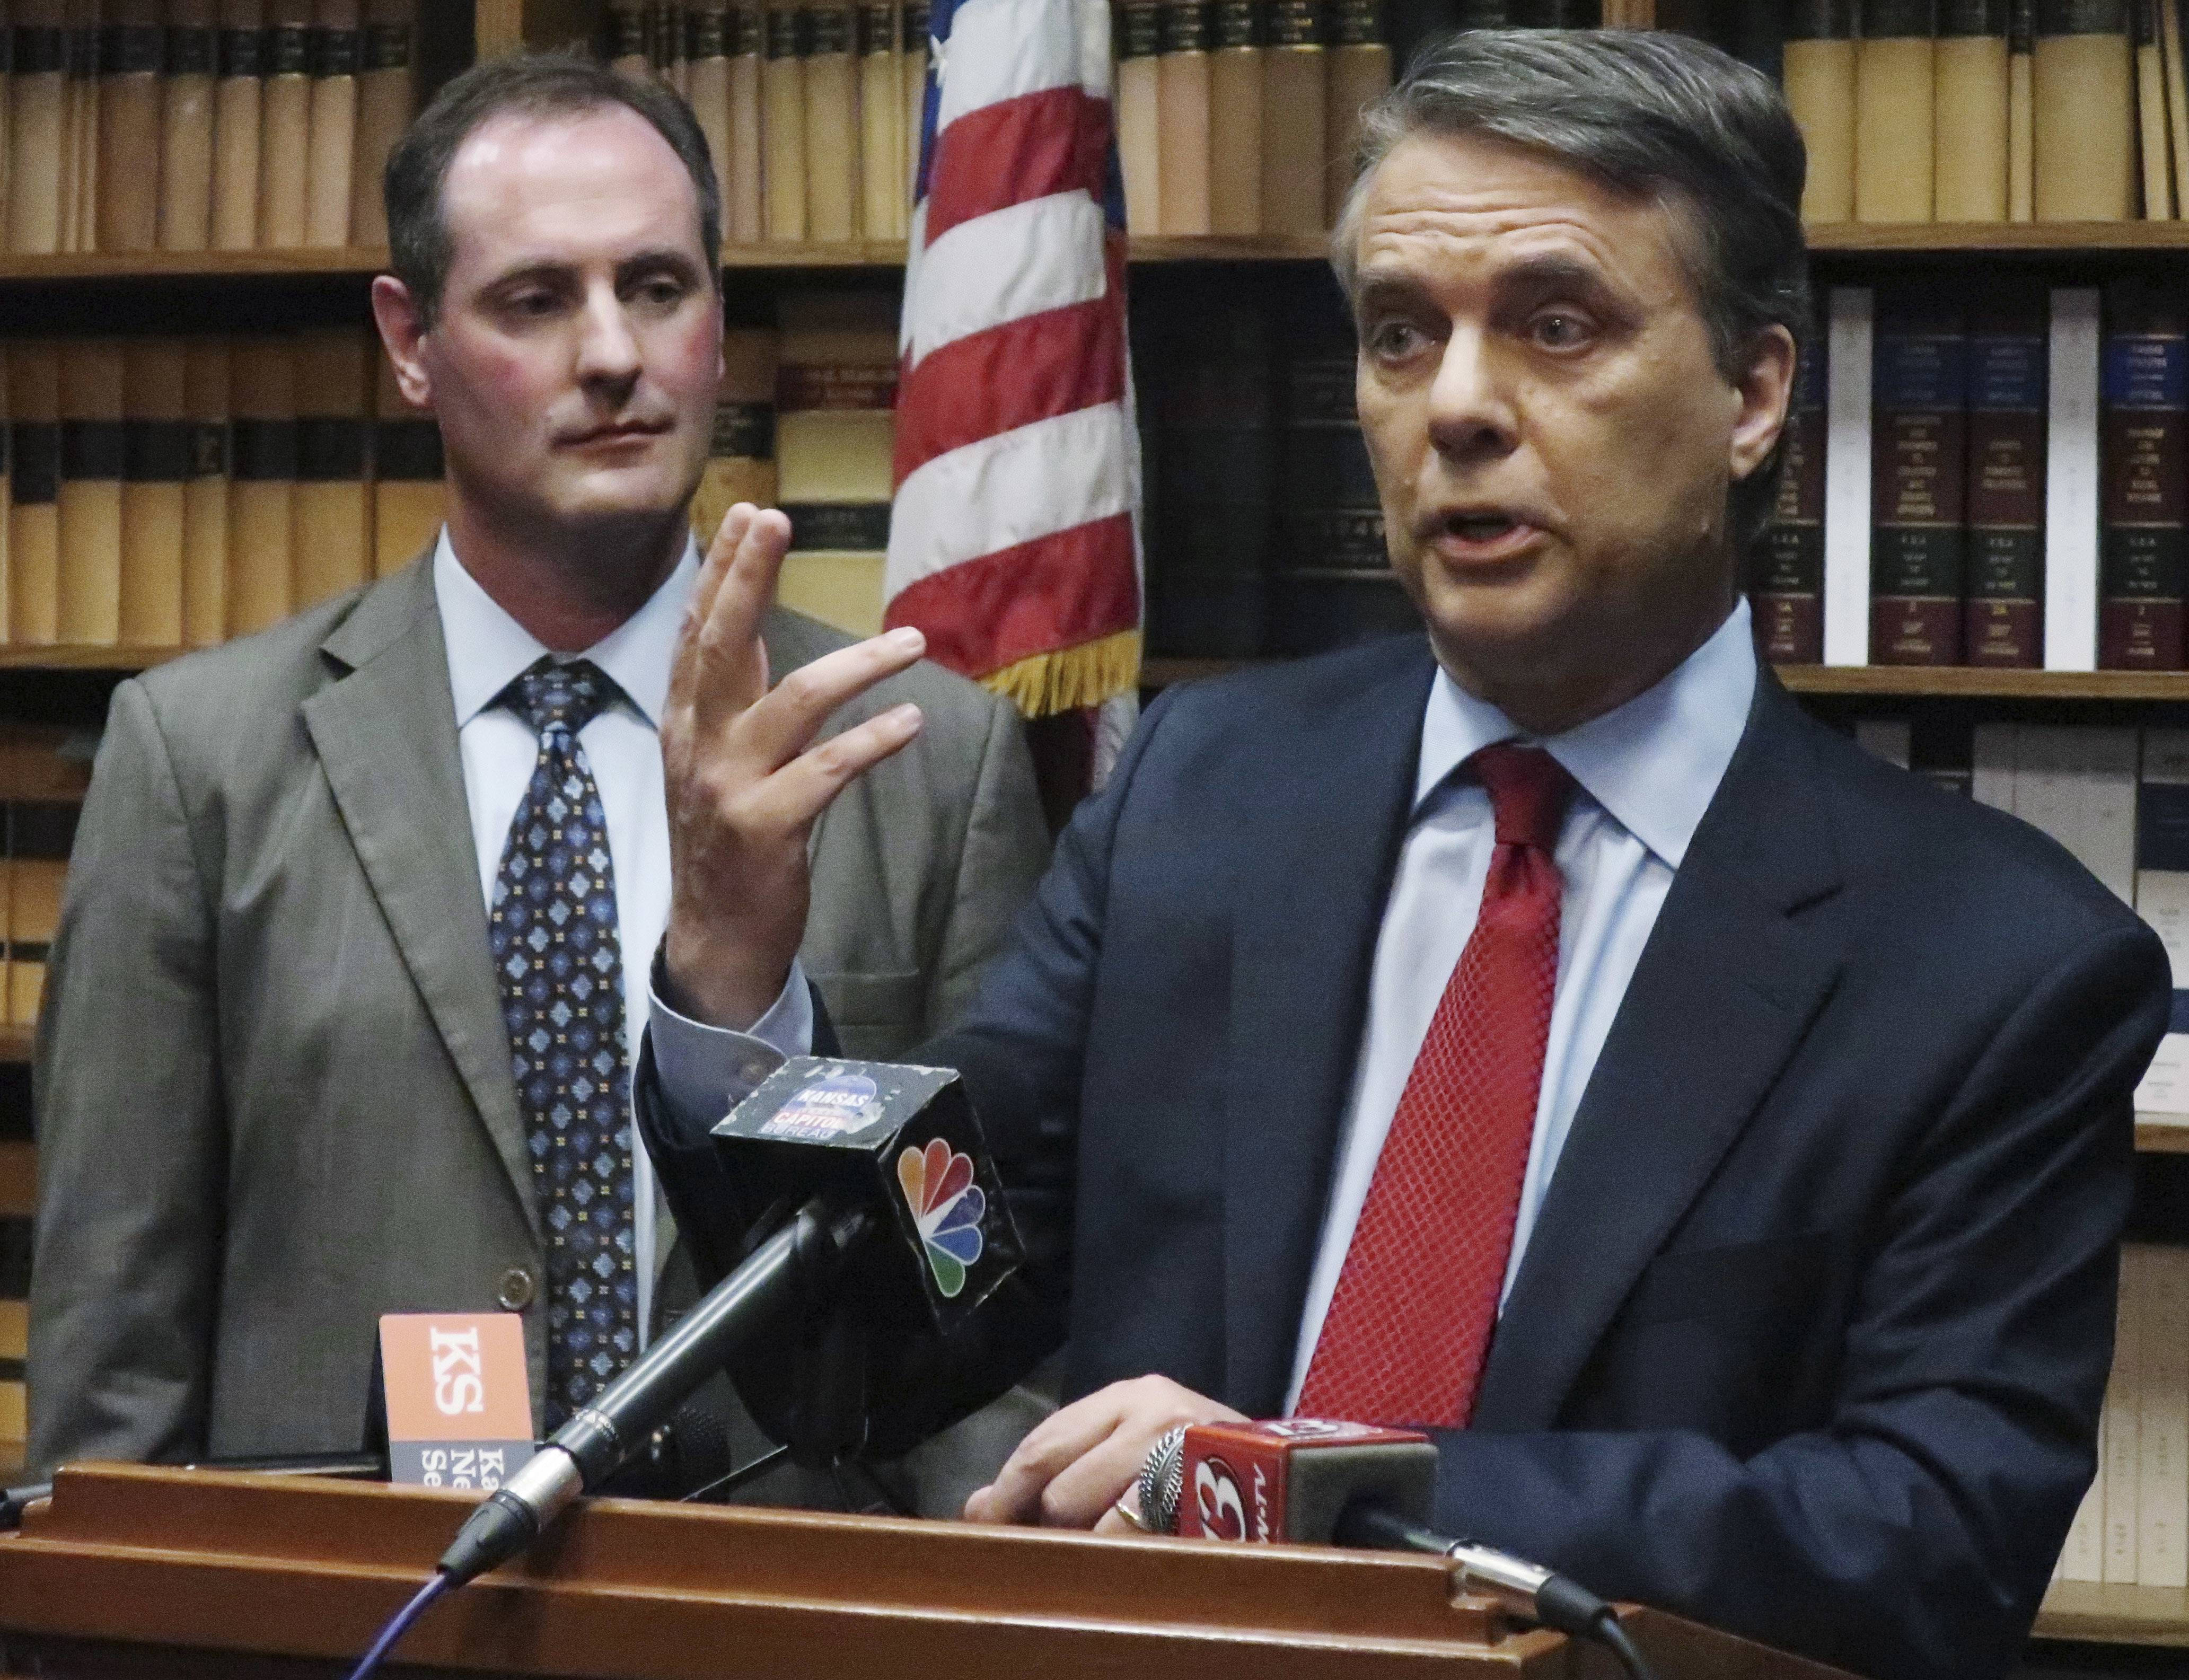 FILE - In this May 30, 2018, file photo, Kansas Gov. Jeff Colyer, right, answers a question from reporters as Lt. Gov. Tracey Mann, left, listens during a news conference in Topeka, Kan. Colyer and immigration hardliner Kris Kobach were virtually tied atop a seven-candidate field with nearly two-thirds of the precincts counted in the primary, late Tuesday, Aug. 7, 2018.